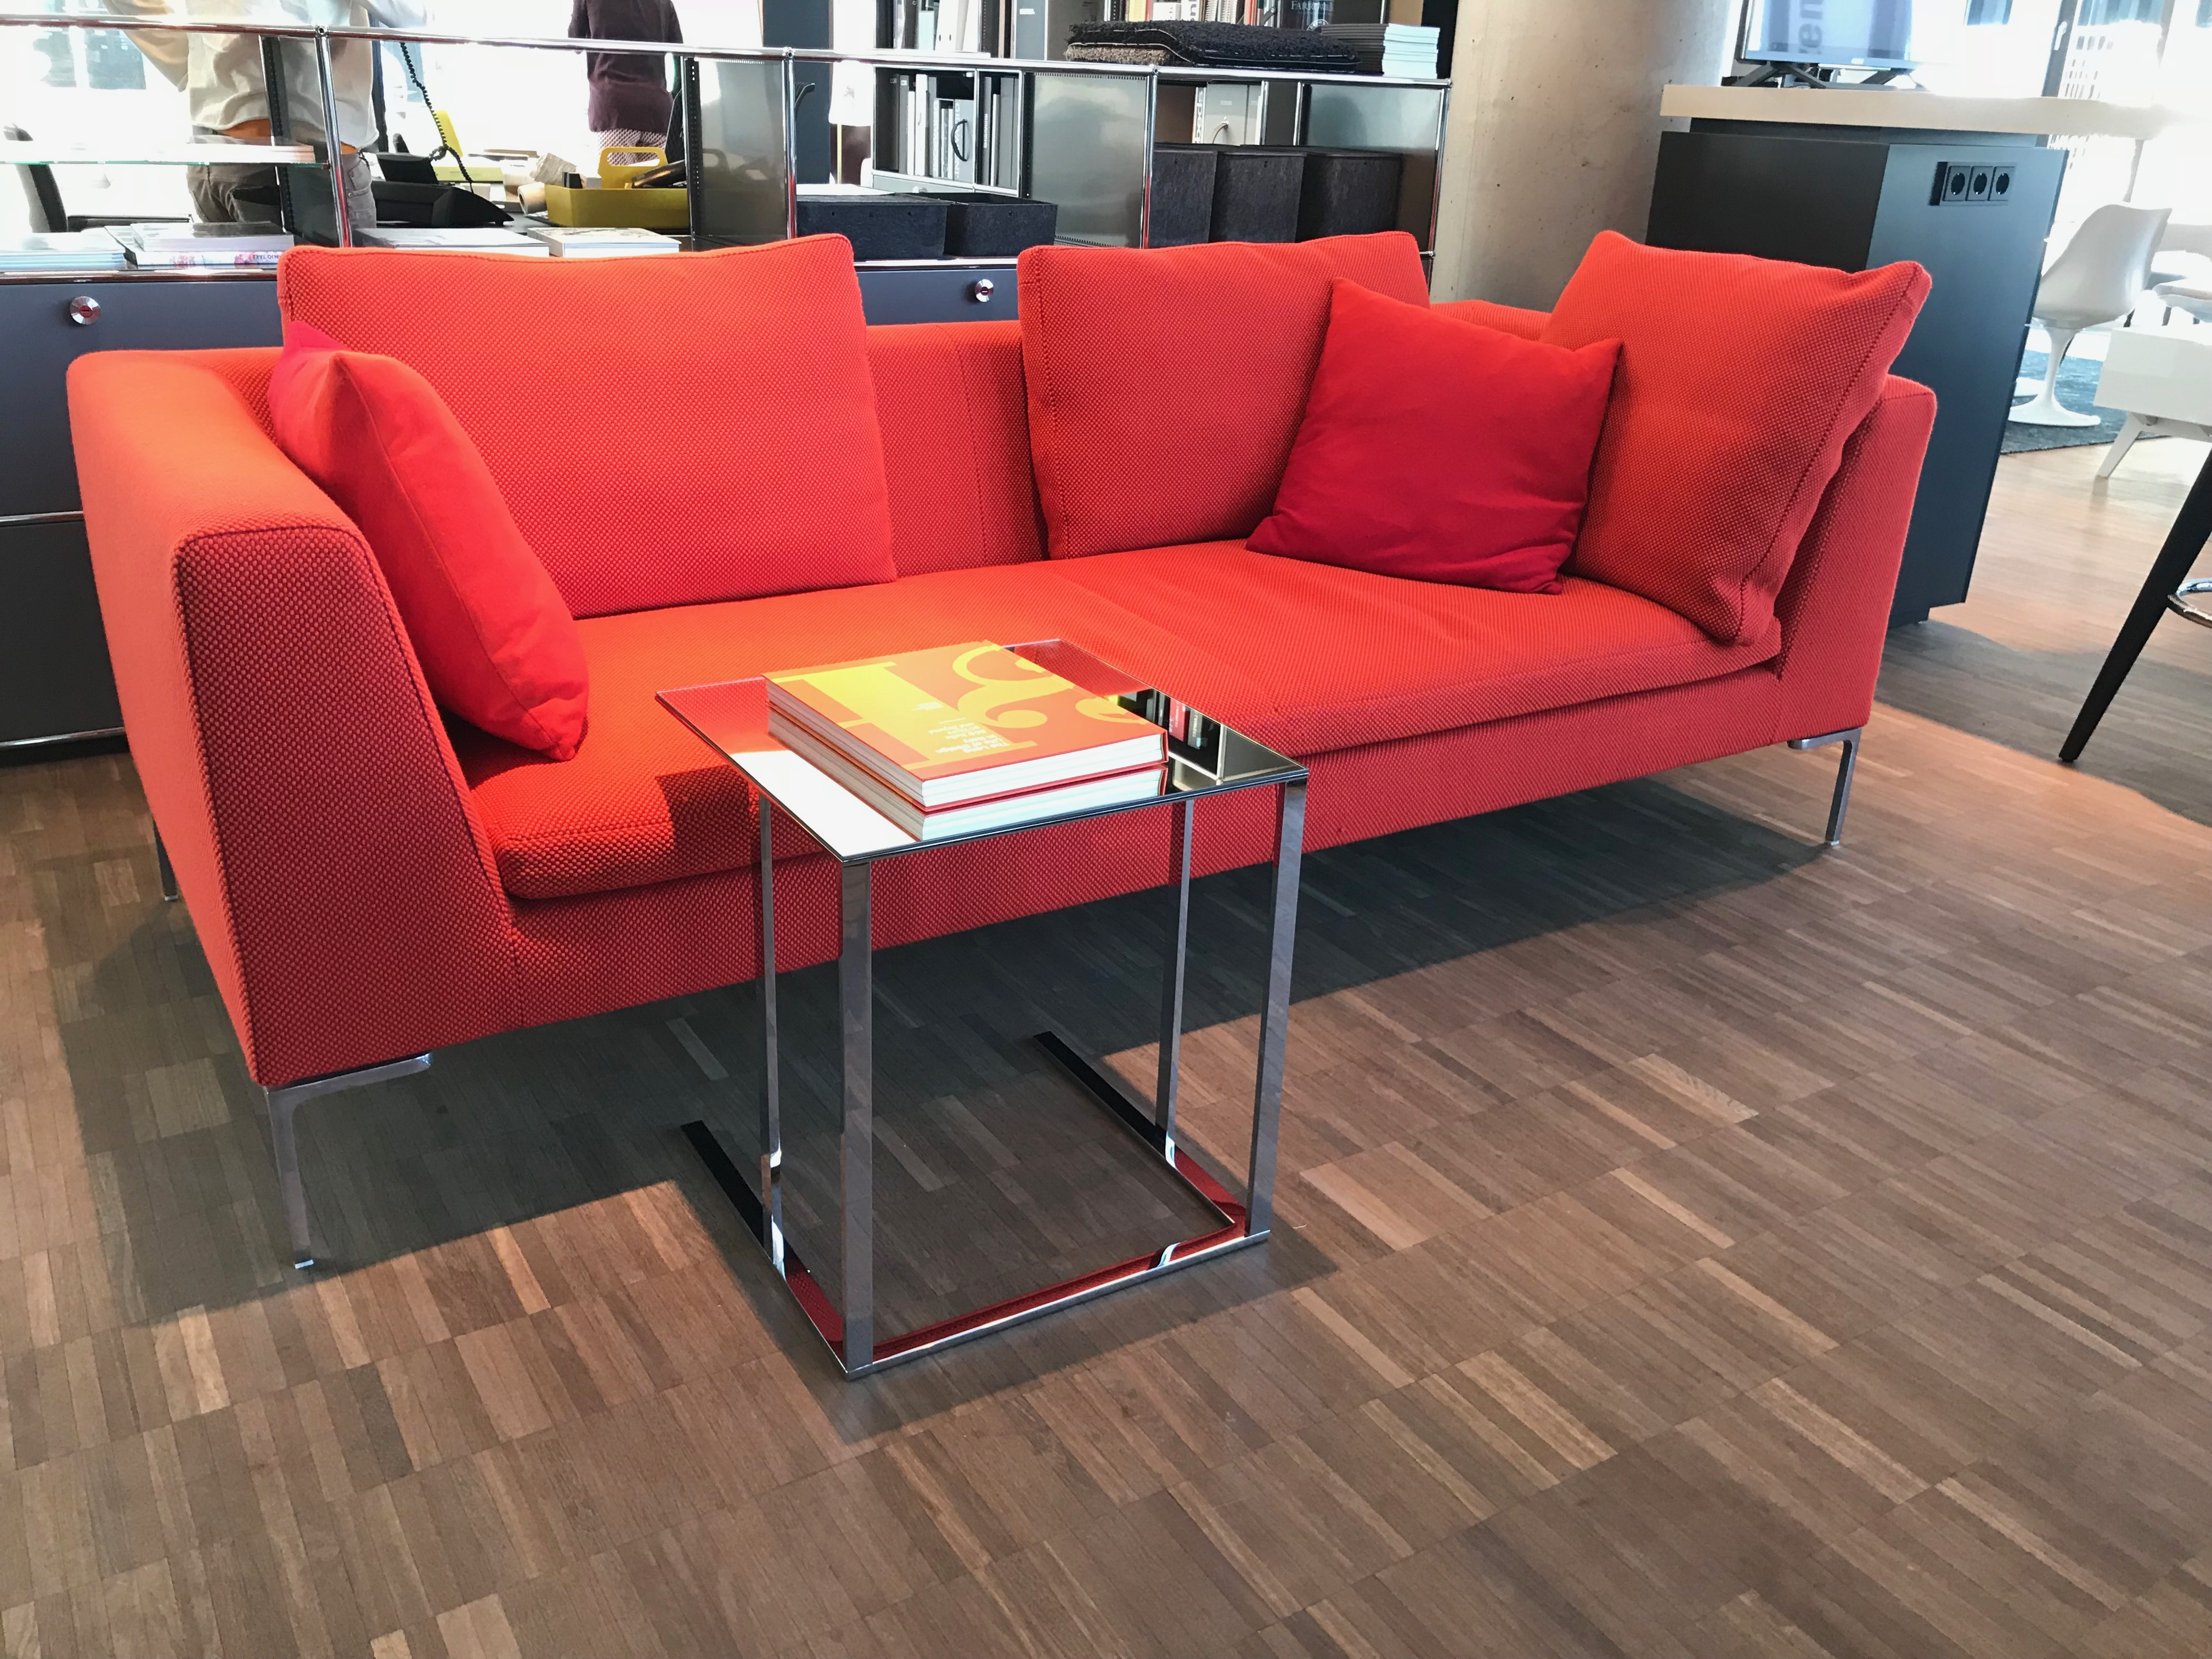 outlet b b italia sofa charles stoff rot outlet vitrapoint d sseldorf. Black Bedroom Furniture Sets. Home Design Ideas